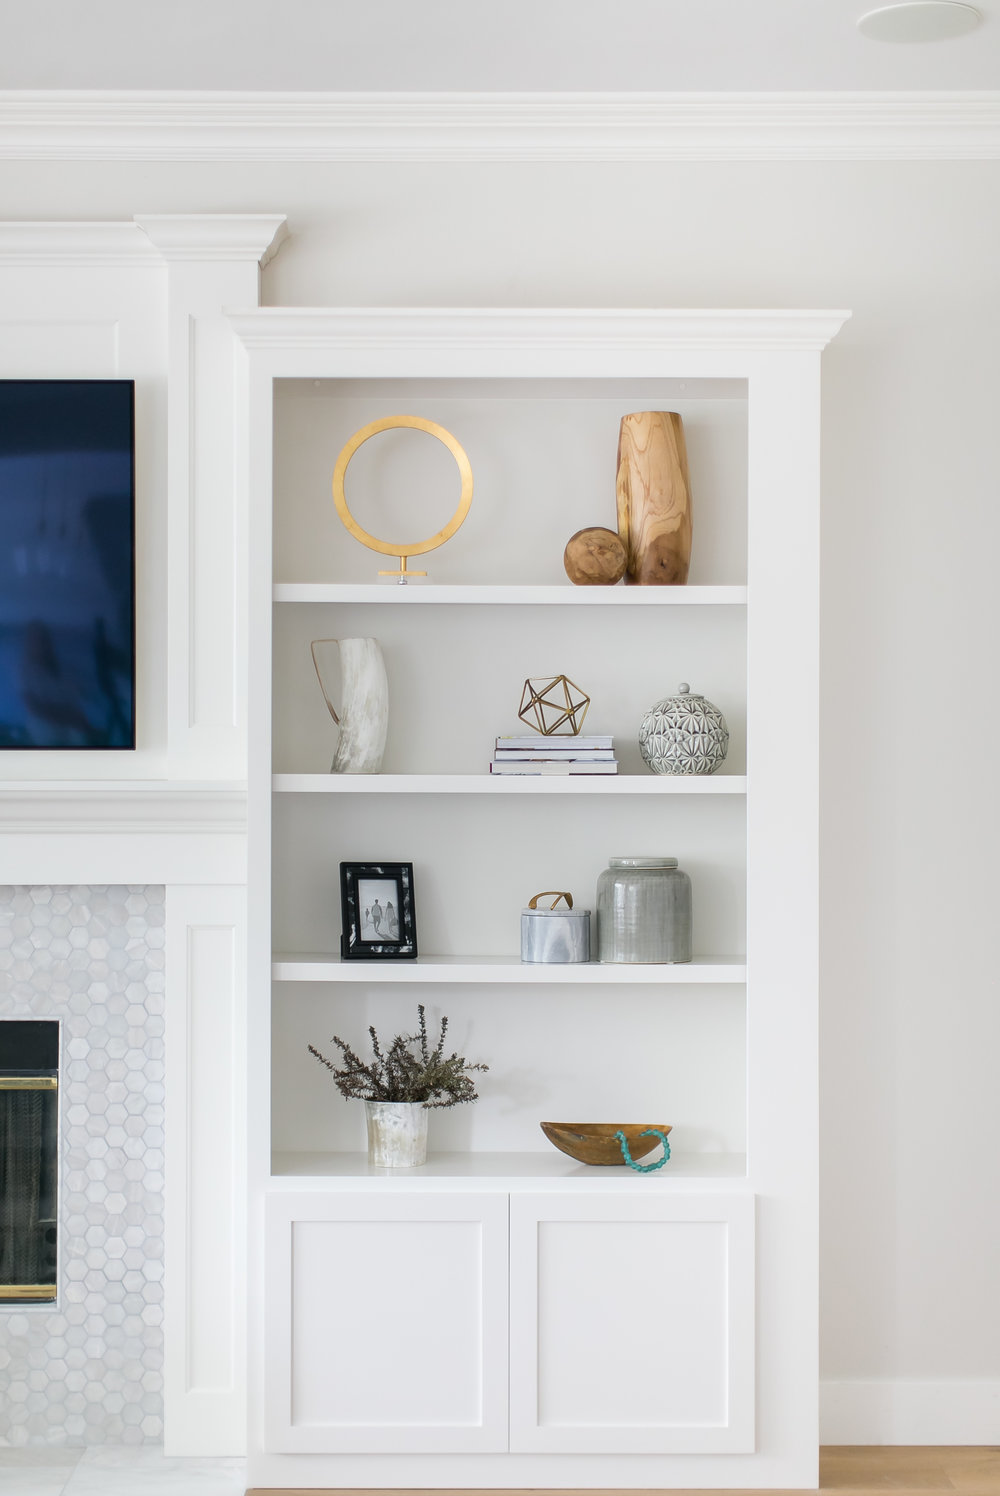 RosewoodInteriors_CotoProject30.JPG